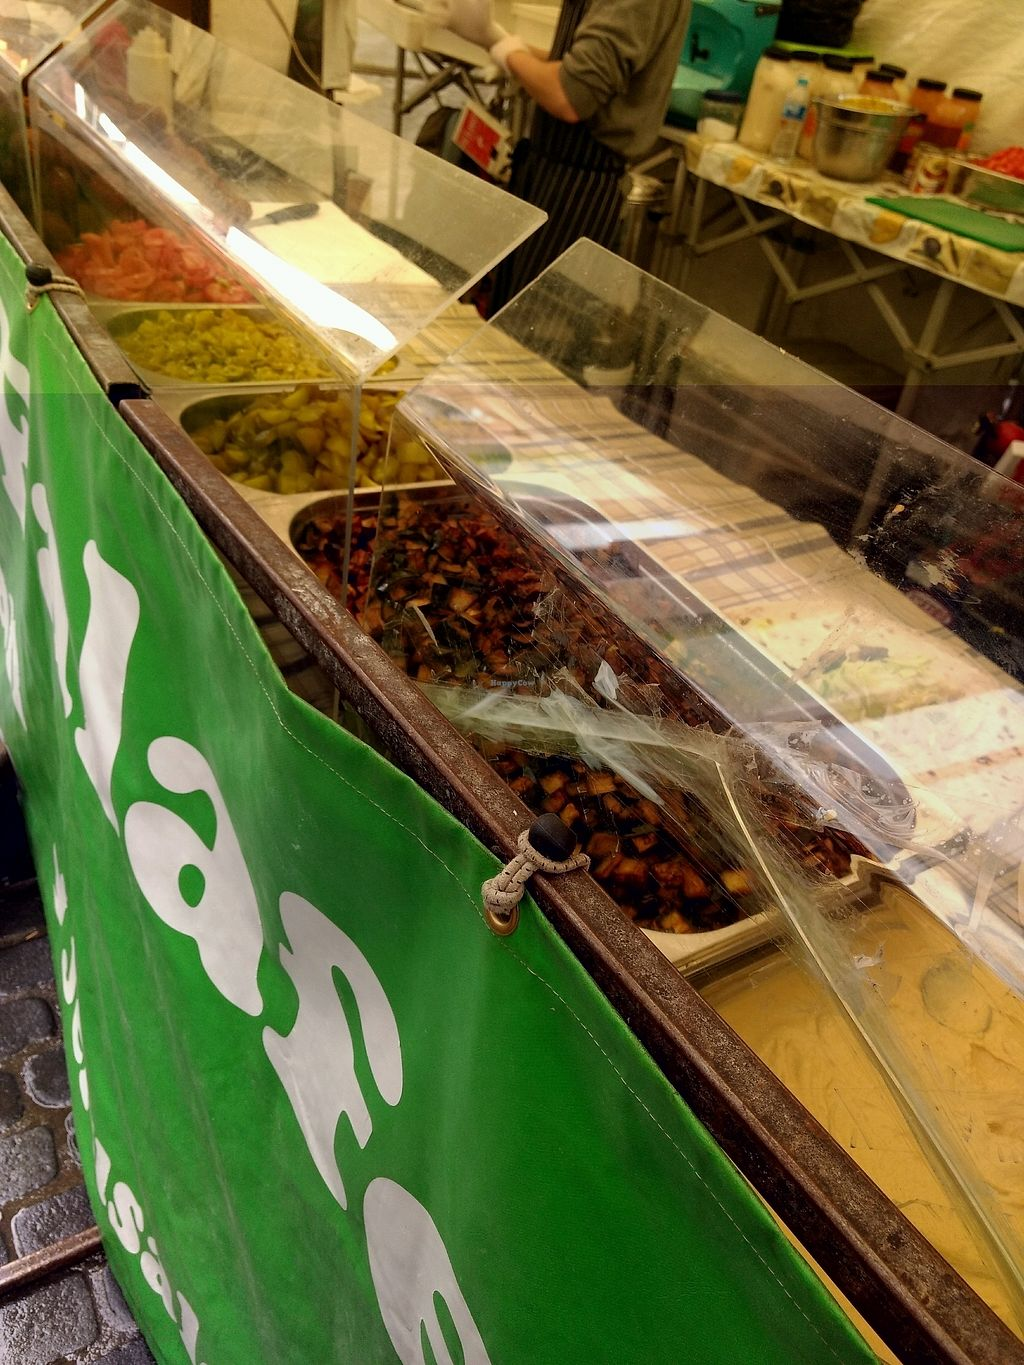 """Photo of Jerusalem Falafel - Food Stall  by <a href=""""/members/profile/craigmc"""">craigmc</a> <br/>salad <br/> October 19, 2017  - <a href='/contact/abuse/image/77117/316568'>Report</a>"""